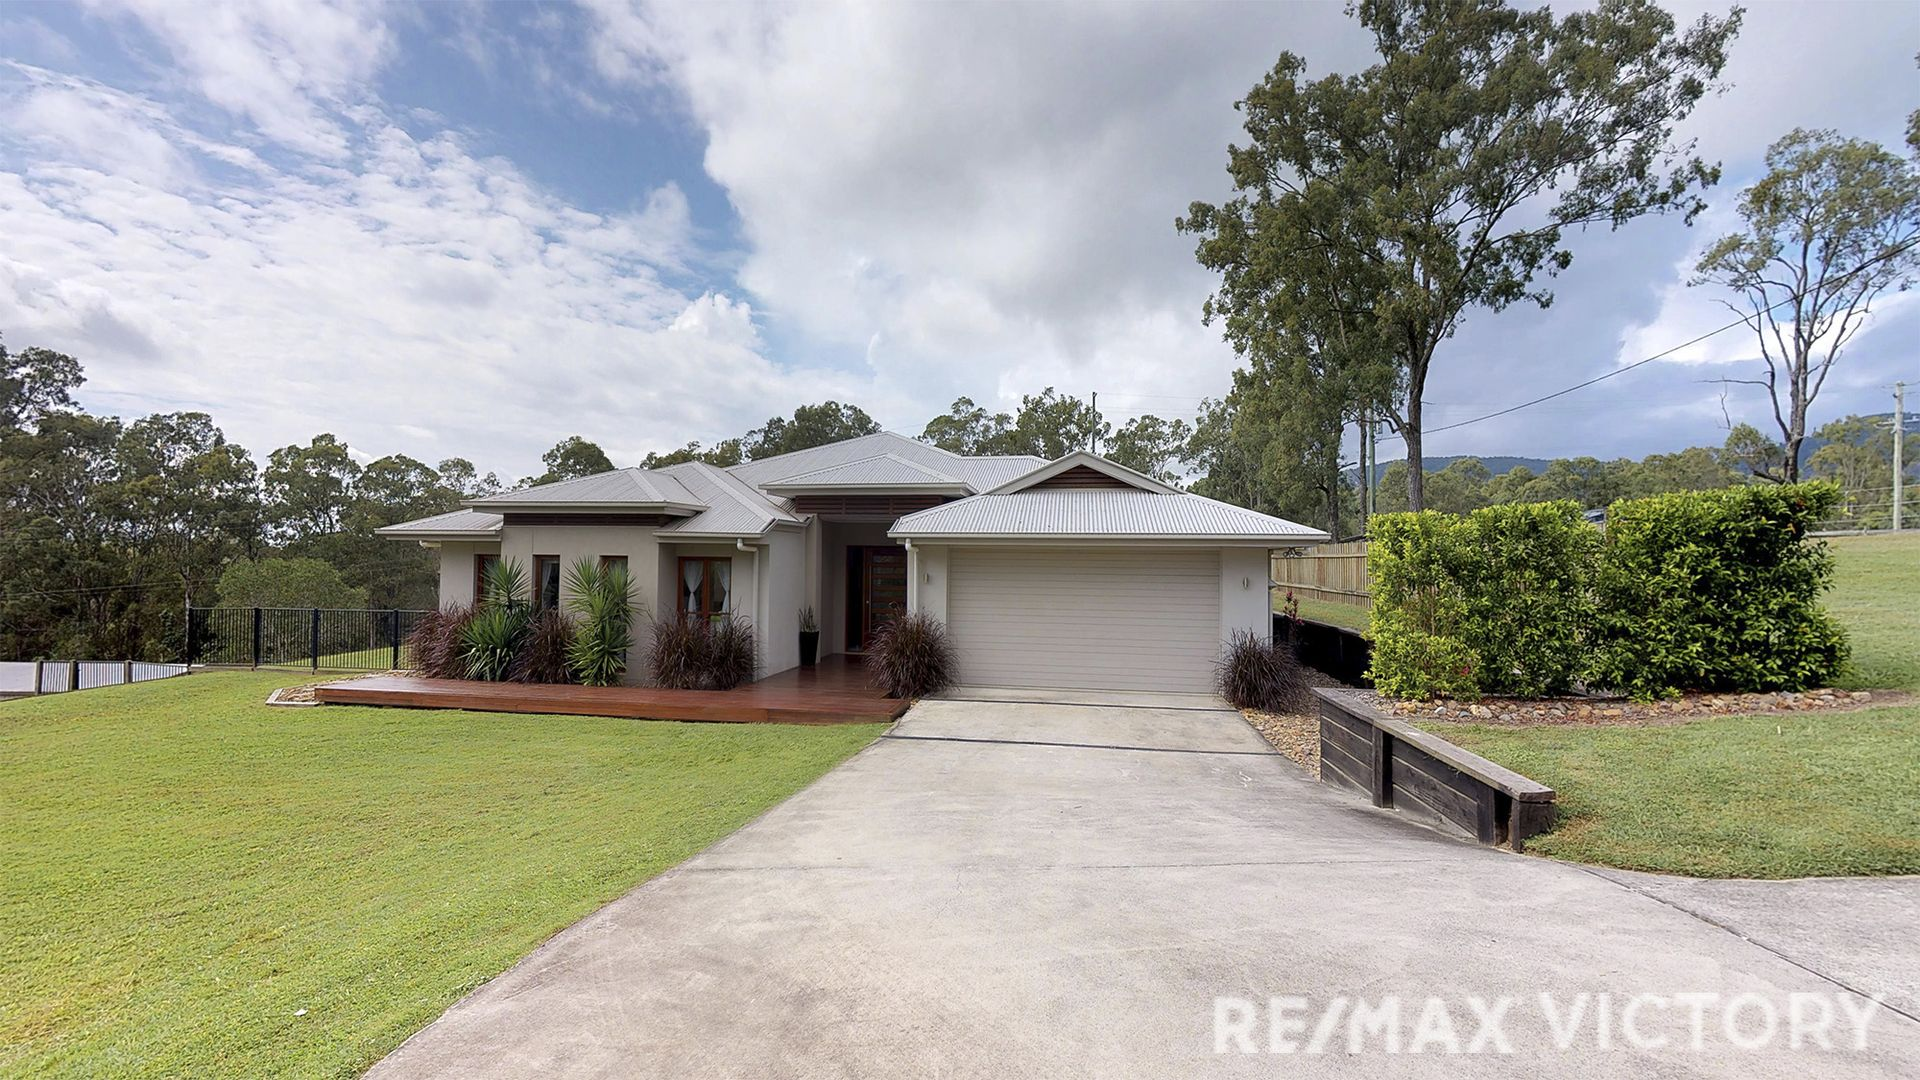 20 Billy Green Drive, Villeneuve QLD 4514, Image 1